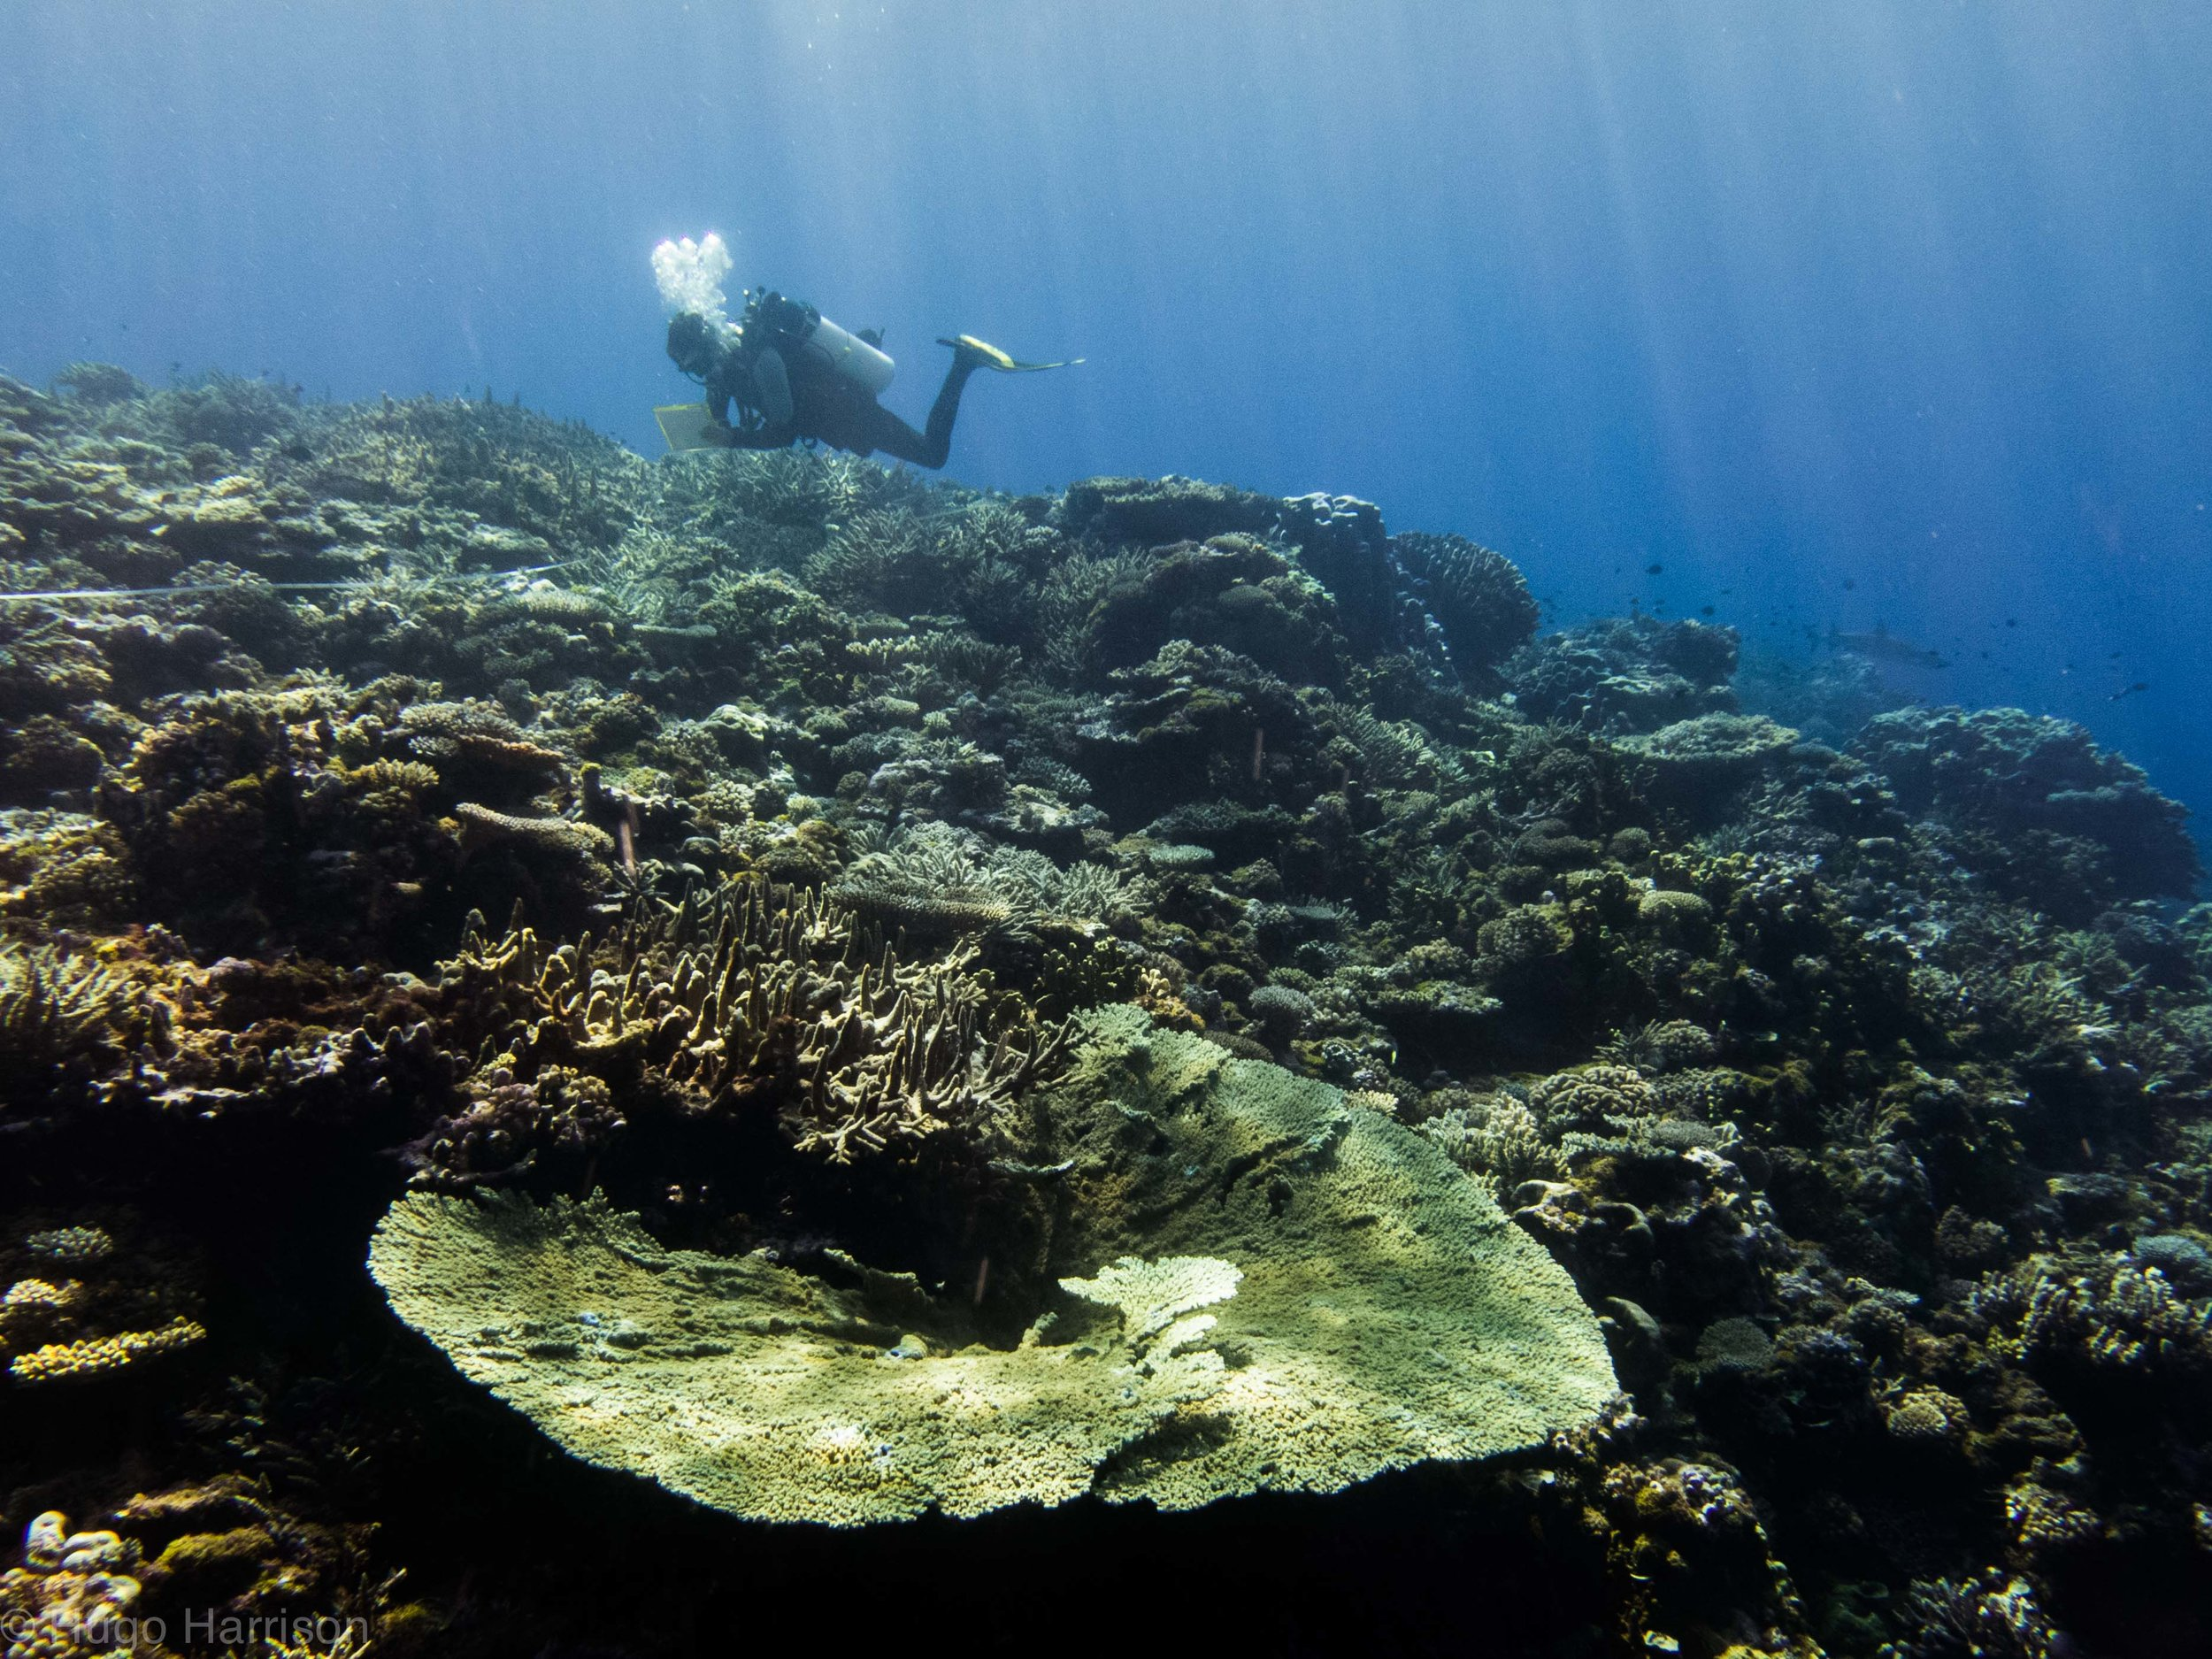 Surveying corals at Kenn Reef in the southern Coral Sea